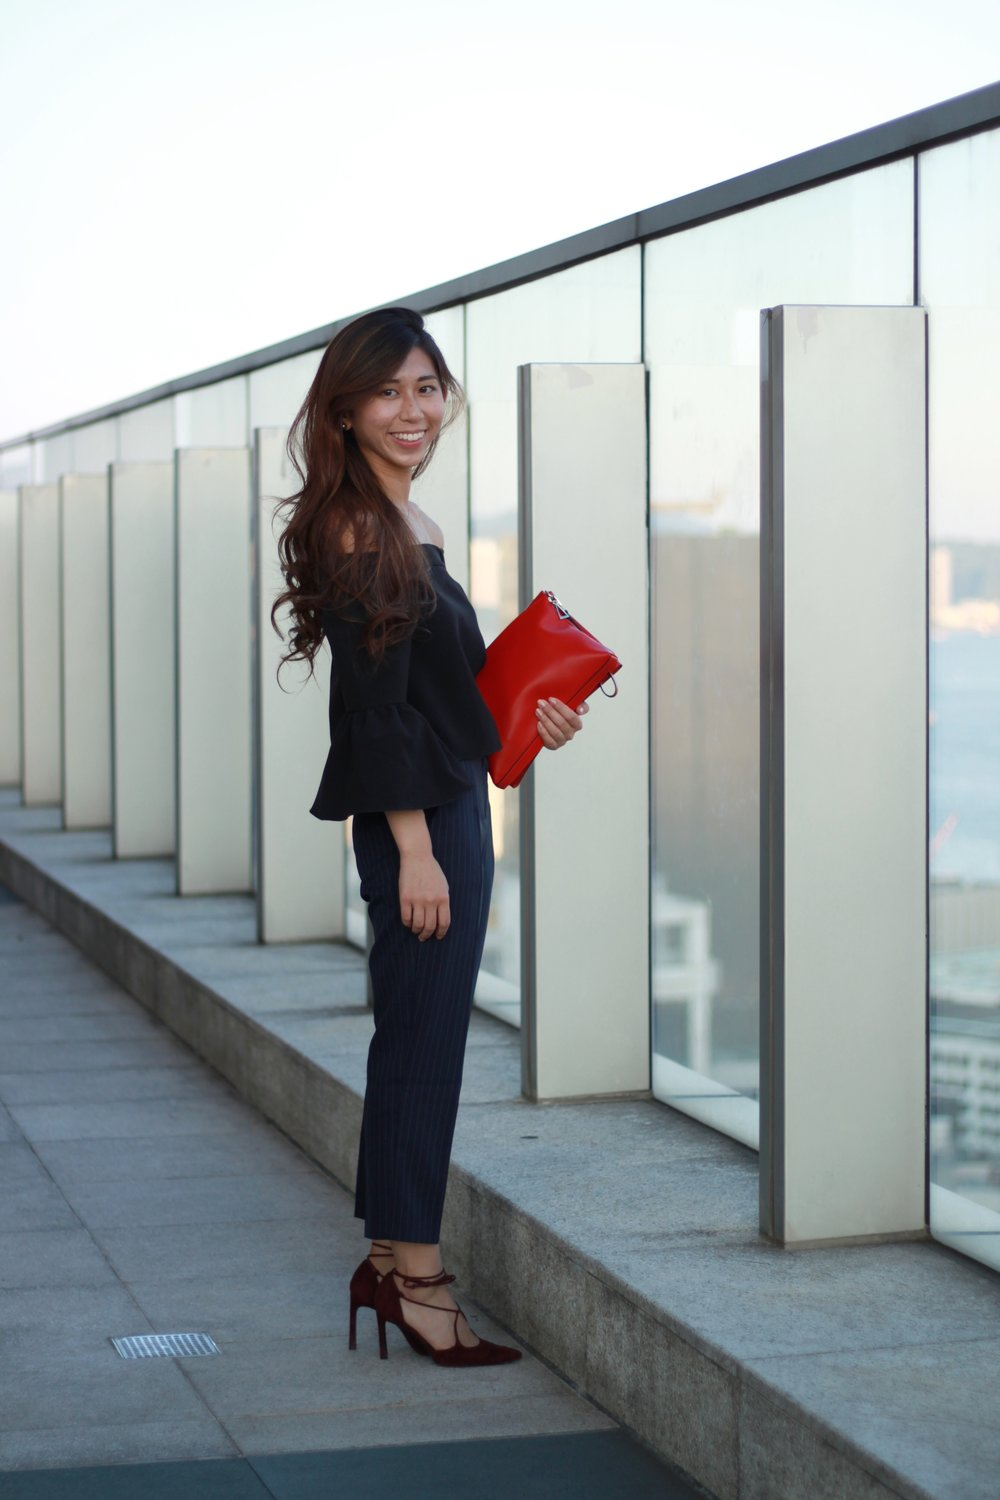 Asos top ($150) / Pants from Taiwan (plus tailor $250) / Stuart Weitzman lace up / Agnes b red clutch ($1300)